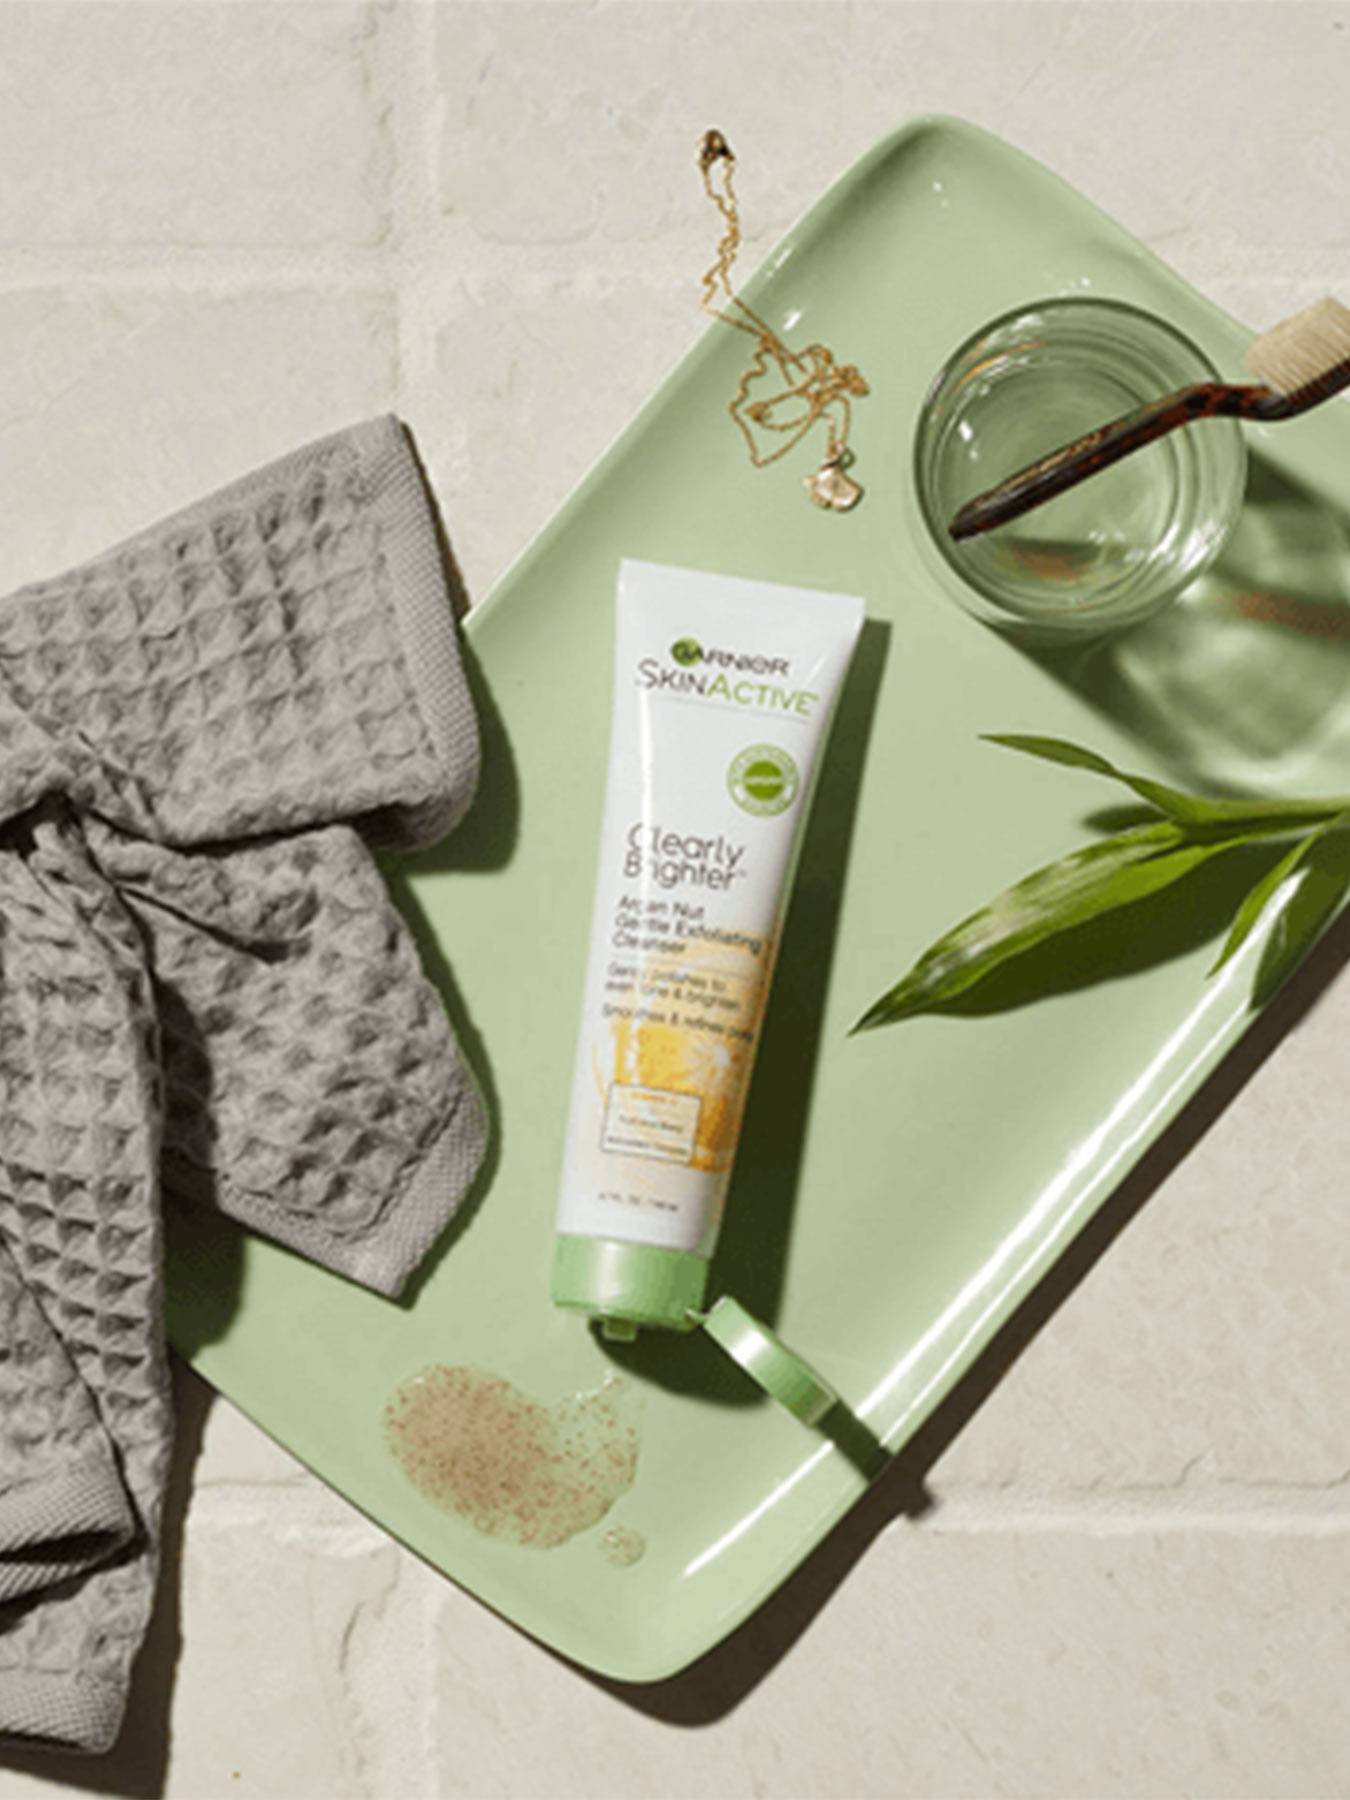 Clearly Brighter Argan Nut Gentle Exfoliating Cleanser open with some product spilled on a green tray holding a glass with a toothbrush, a gold necklace and pendant, a leaf, and a grey washcloth.